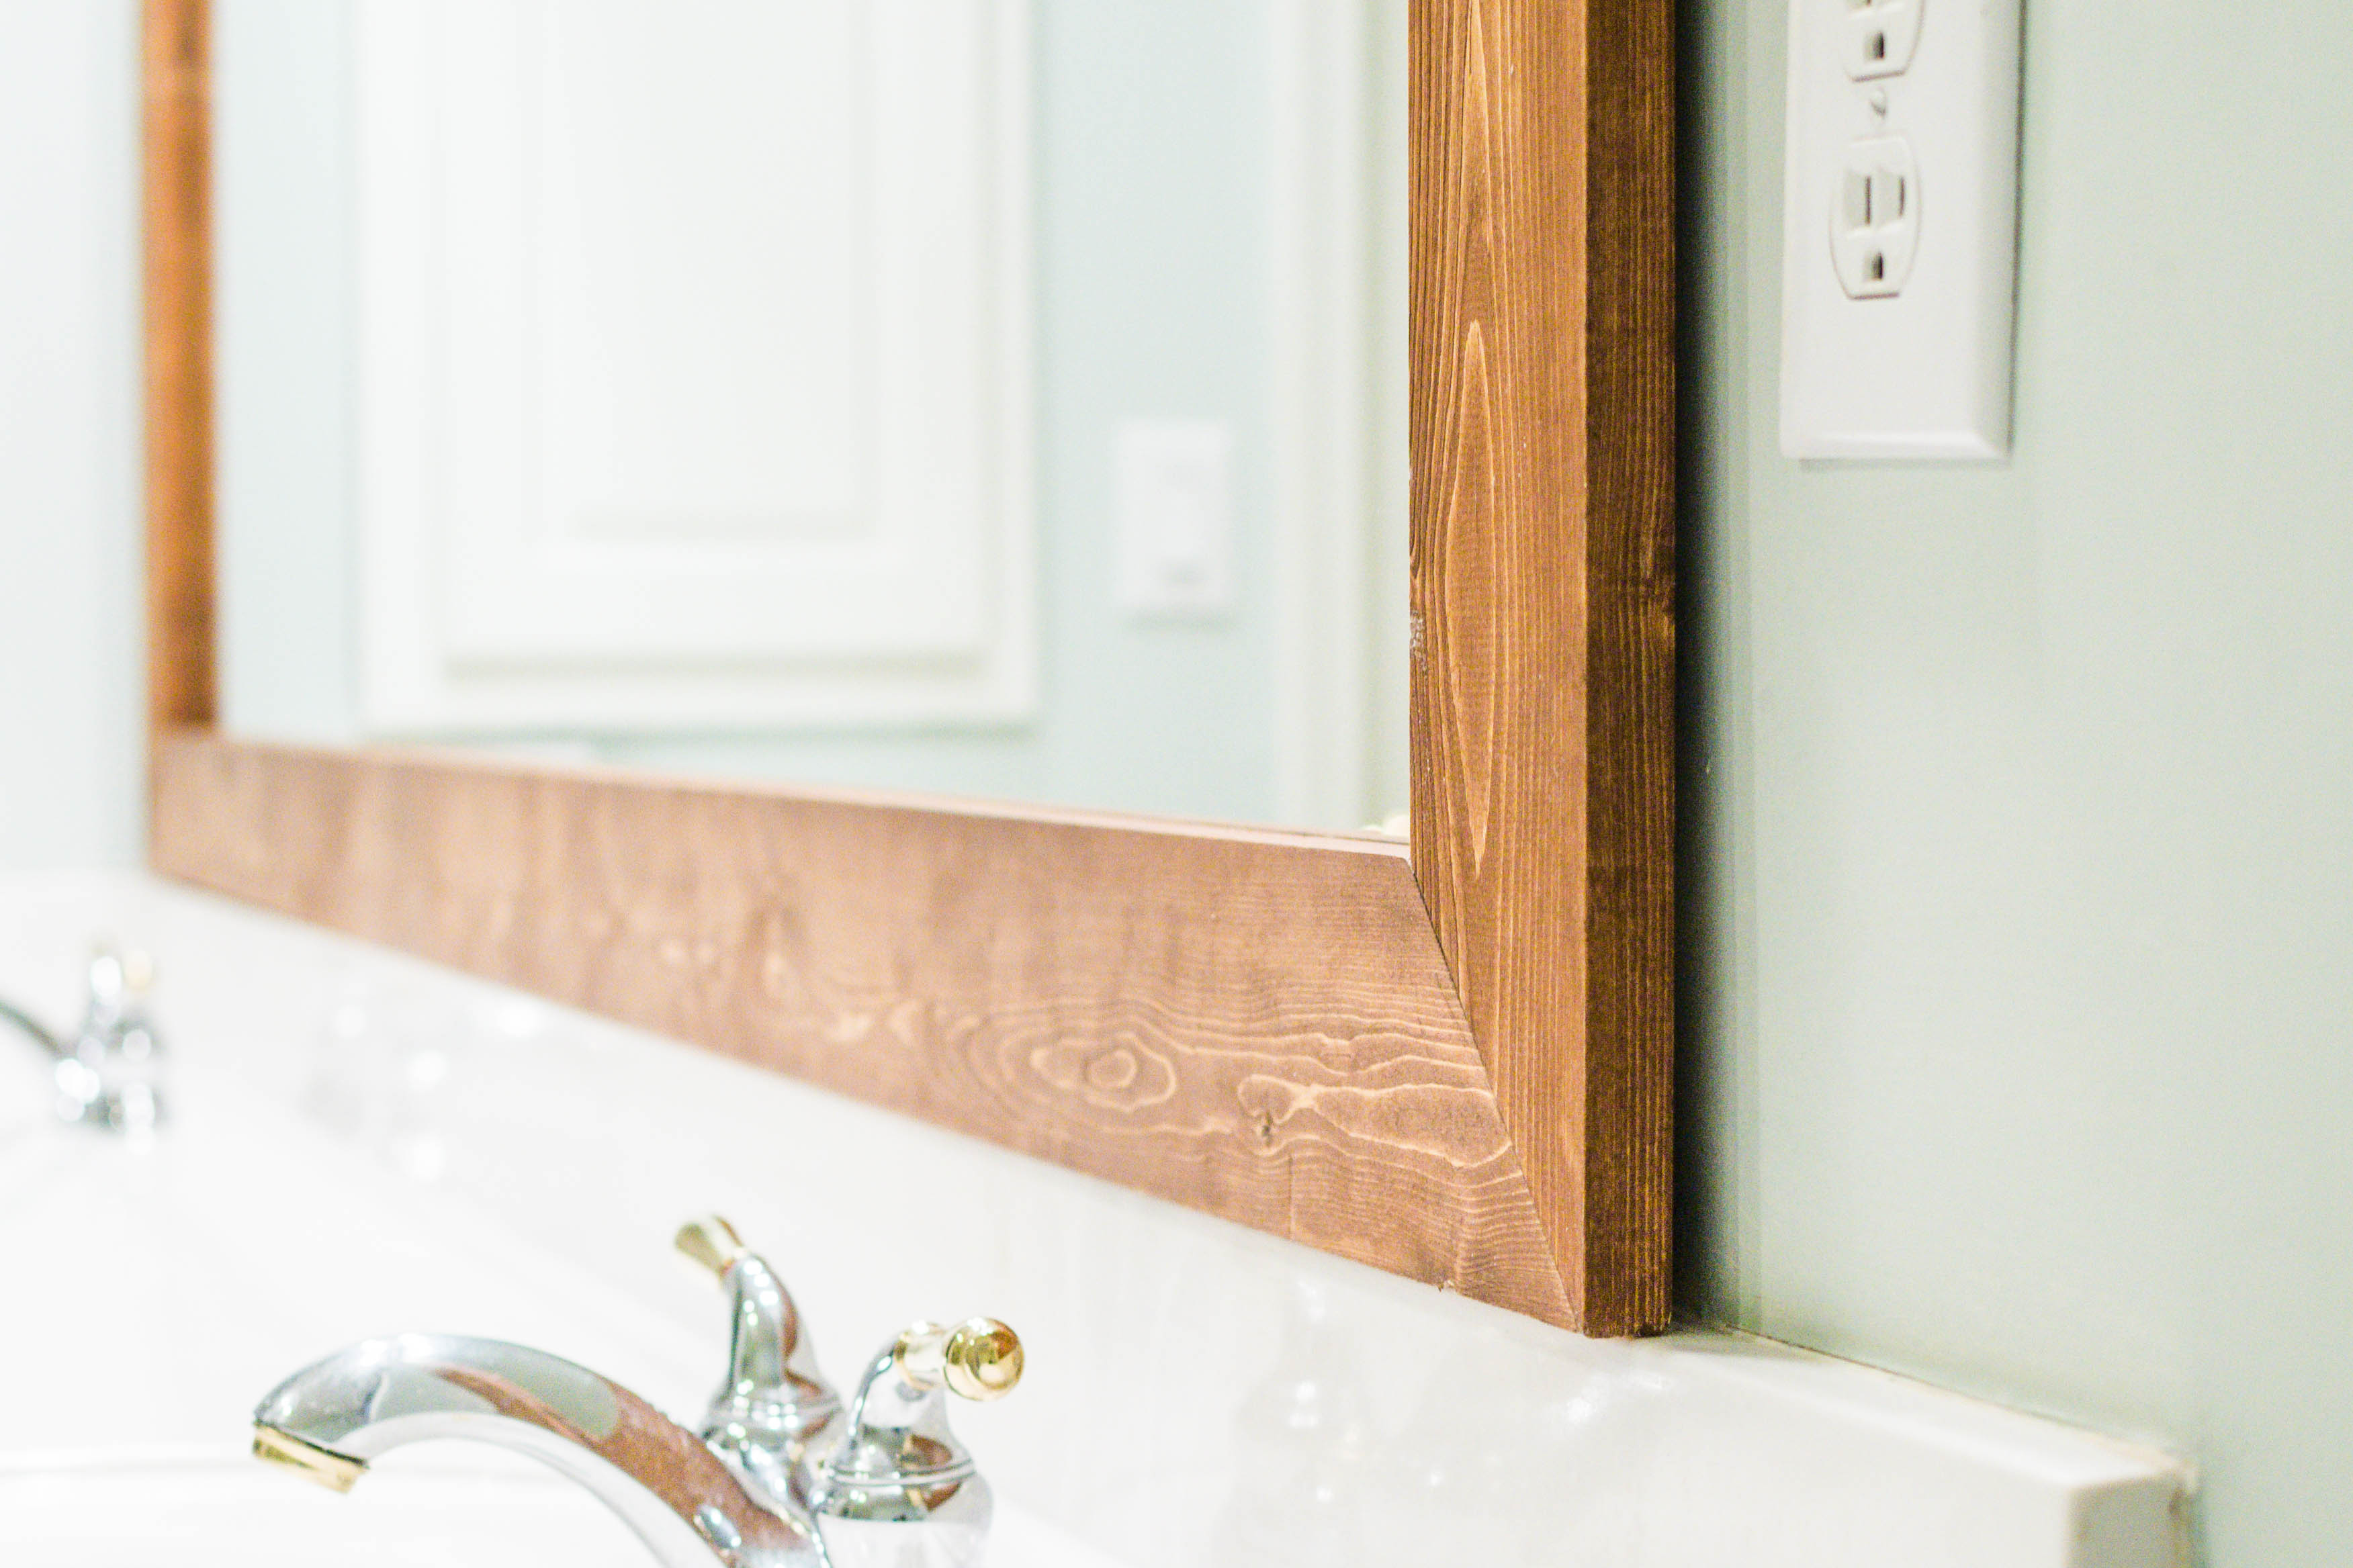 How To Frame Pictures How To Diy Upgrade Your Bathroom Mirror With A Stained Wood Frame